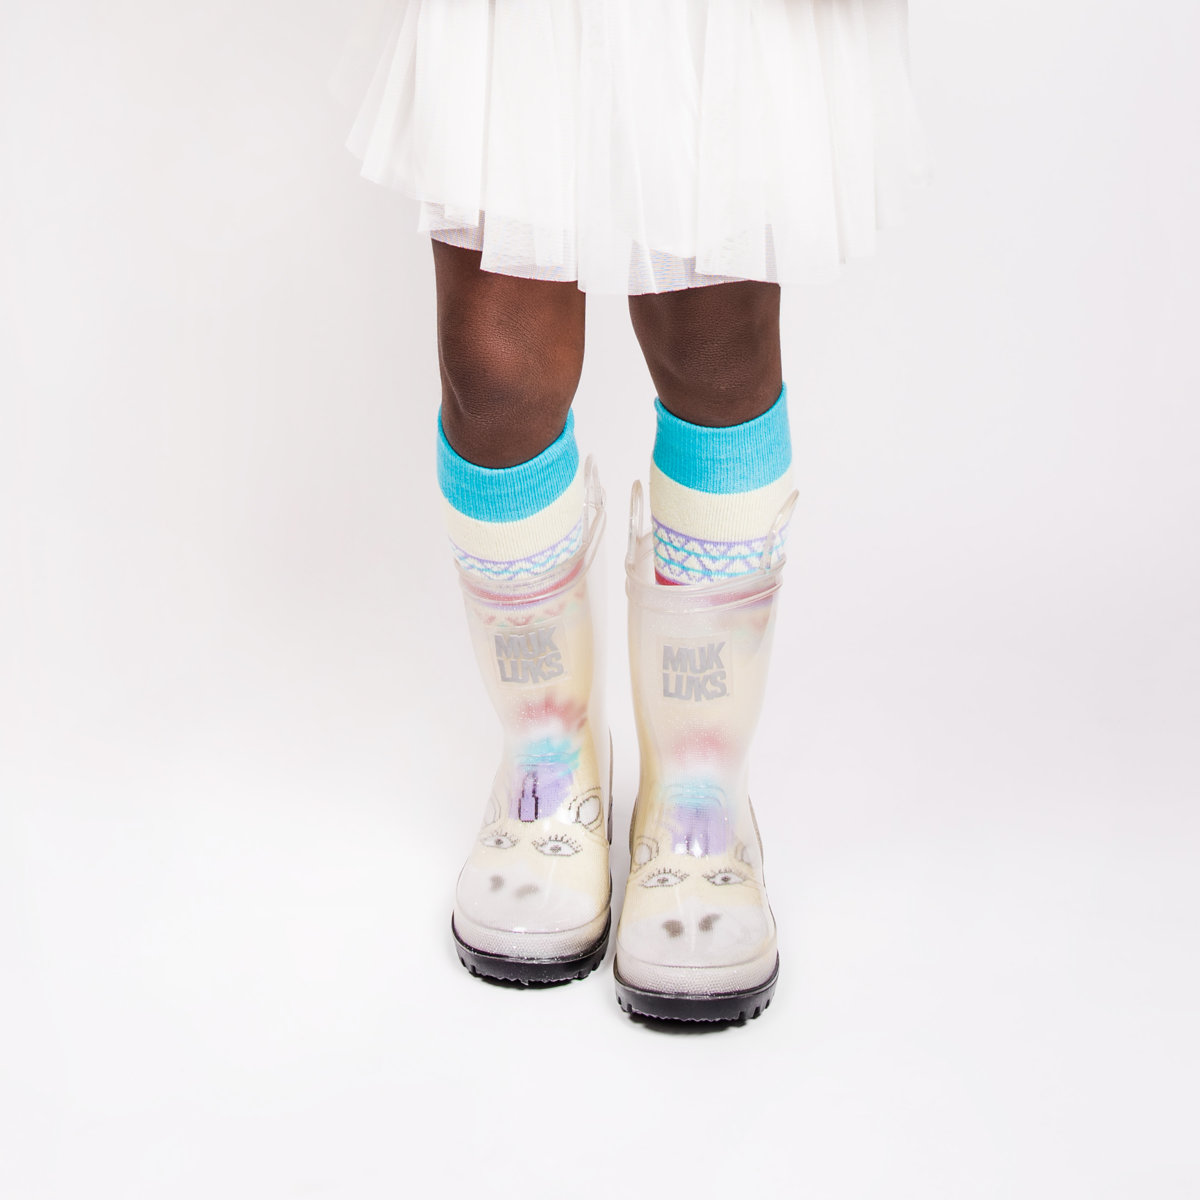 MUK LUKS Girls Clear Molly Rain Boots With 5 Pk Socks On Sale For 1799 Regular 48 These Are Available In Sizes S 7 8 M 9 10 L 11 12 And